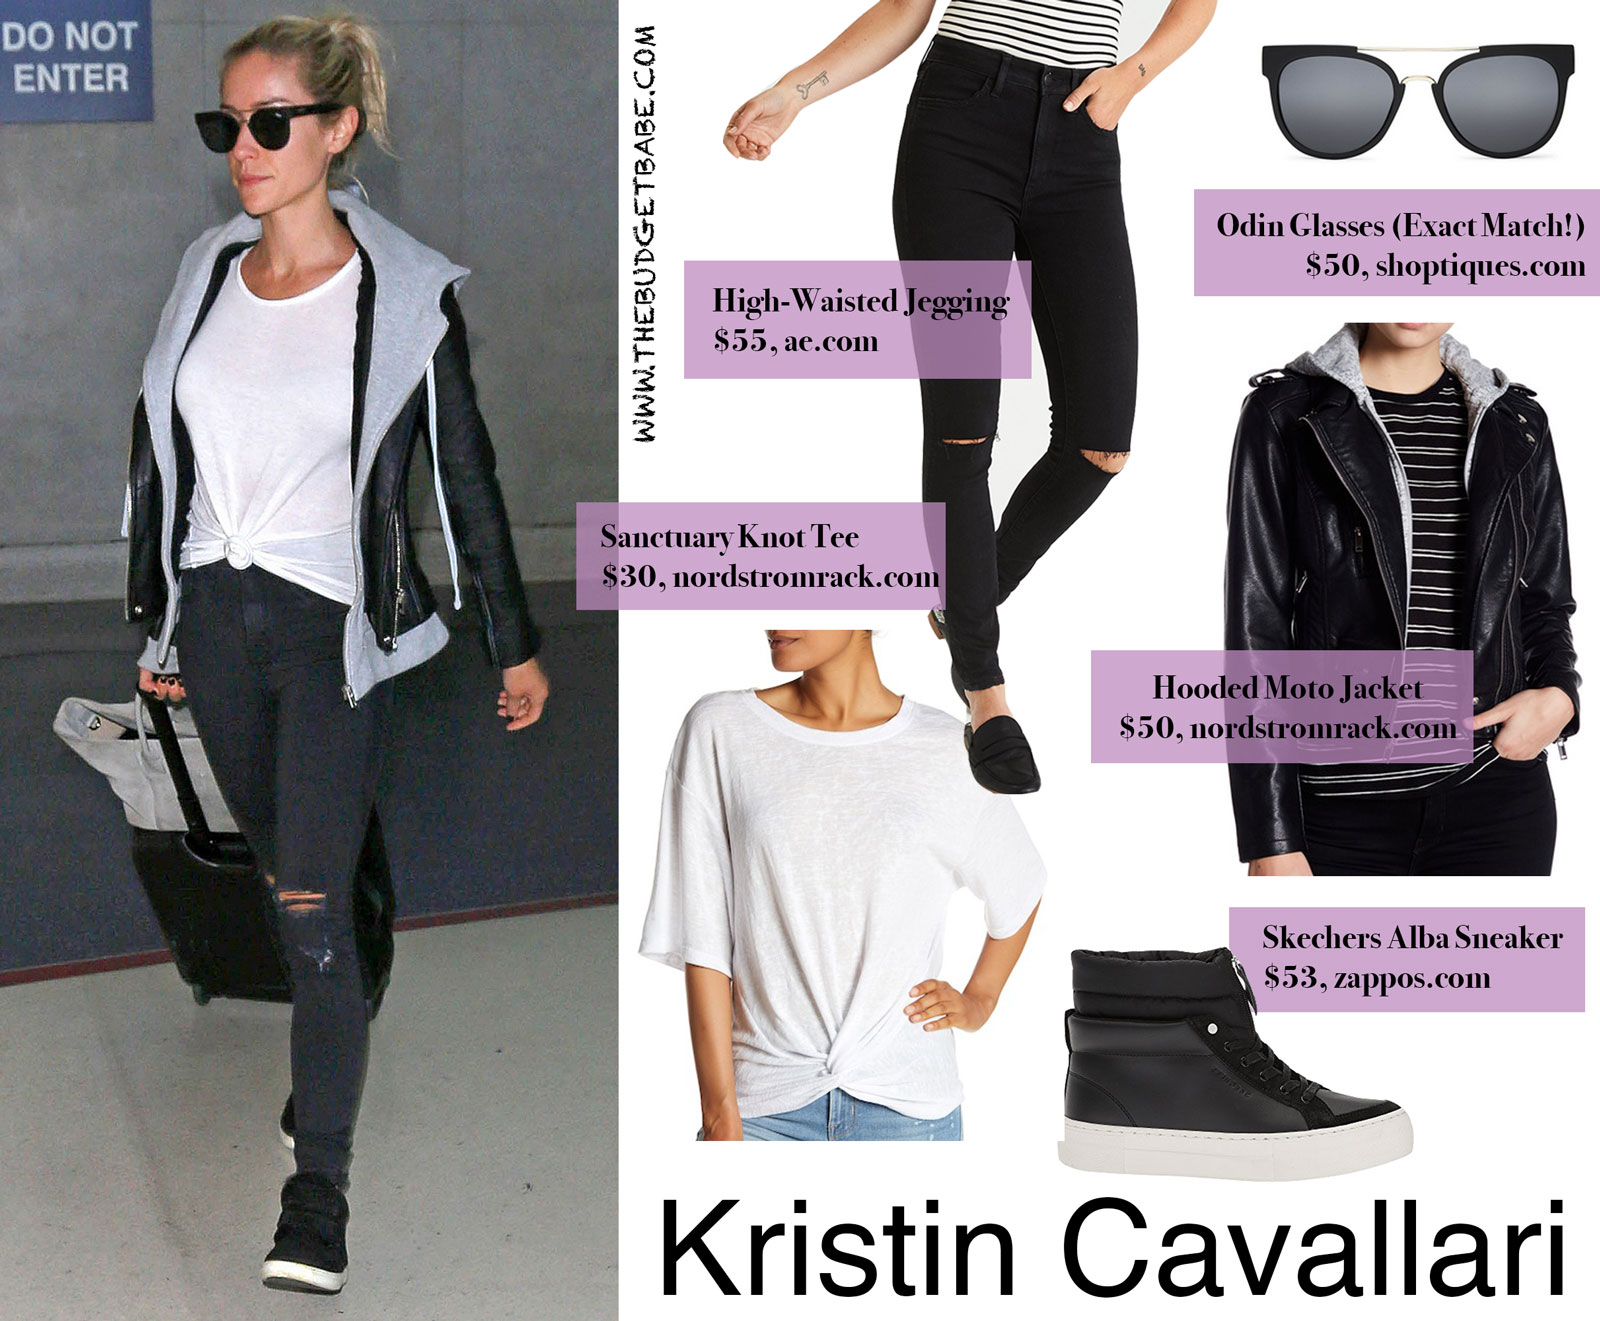 Kristin Cavallari Airport Style Look for Less